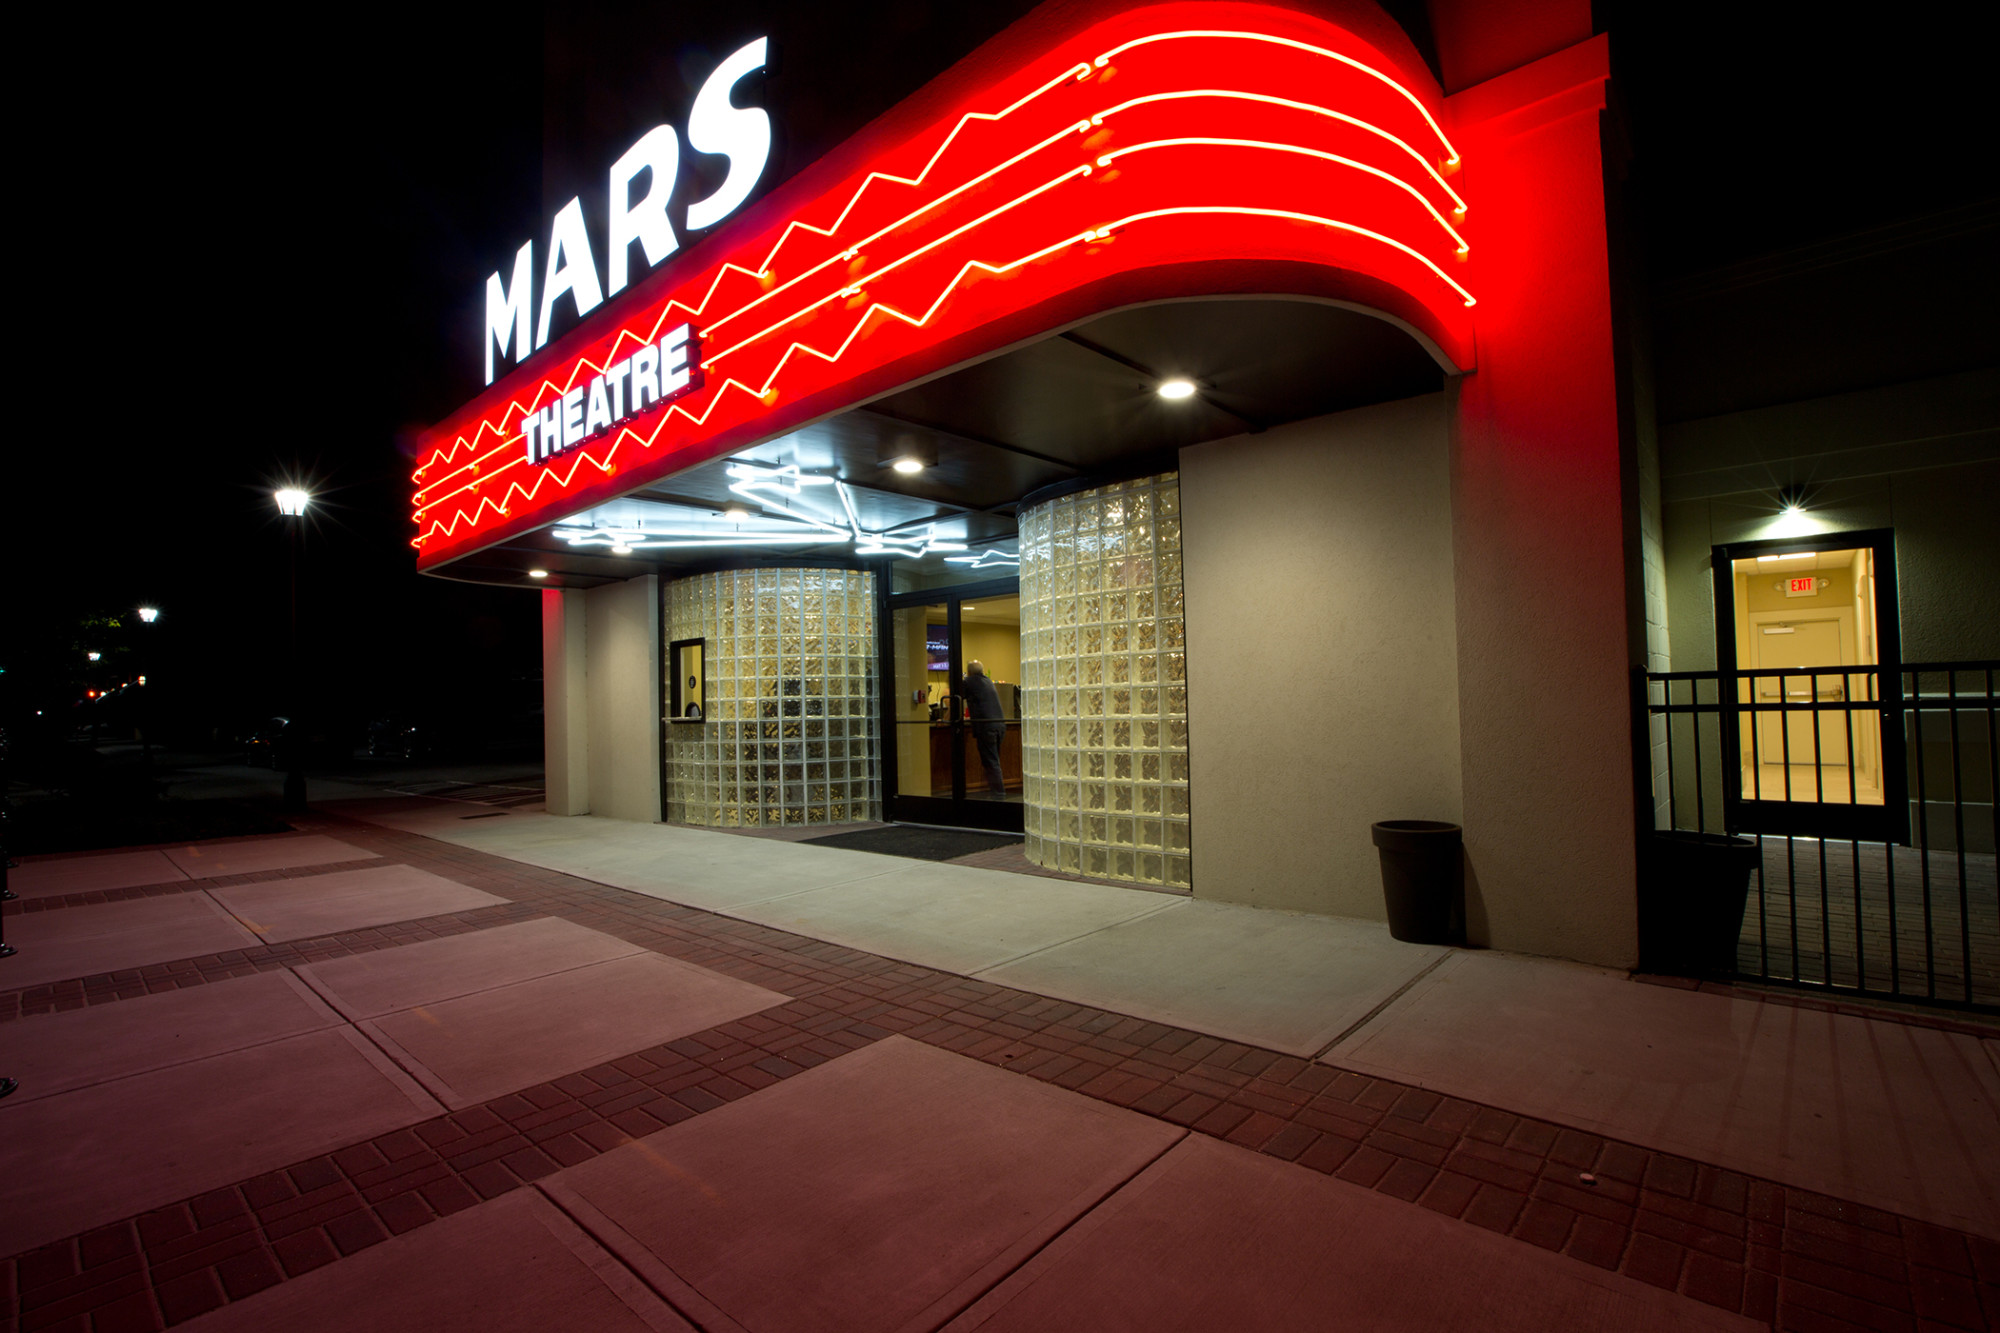 Mars Theatre in Springfield, Georgia